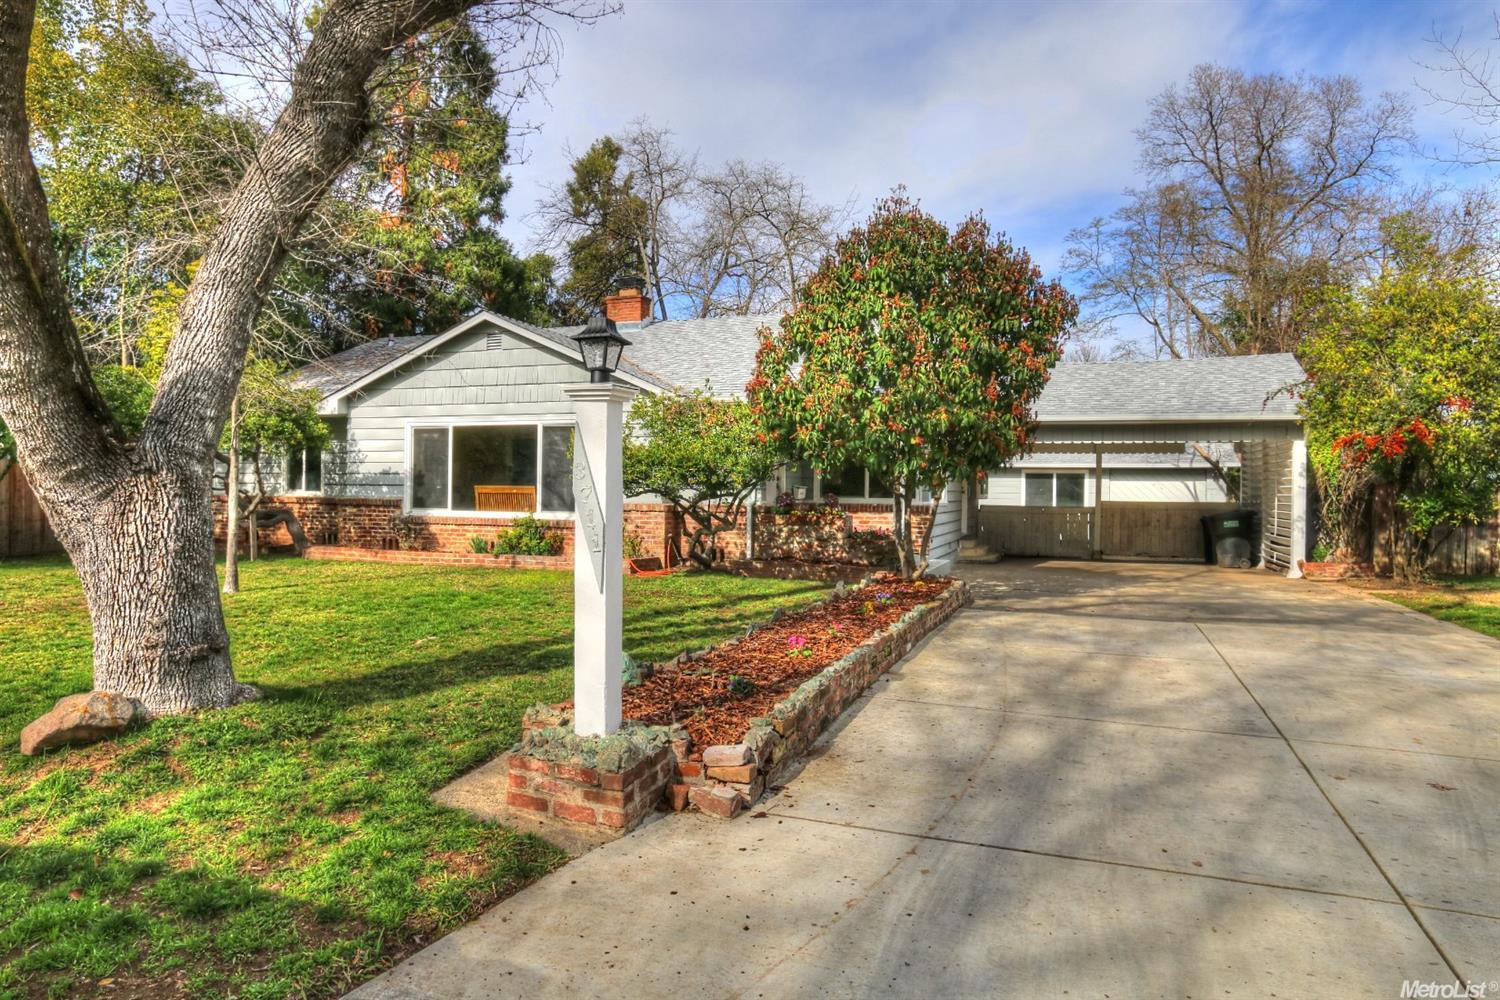 3711 El Ricon Way, Sacramento, CA